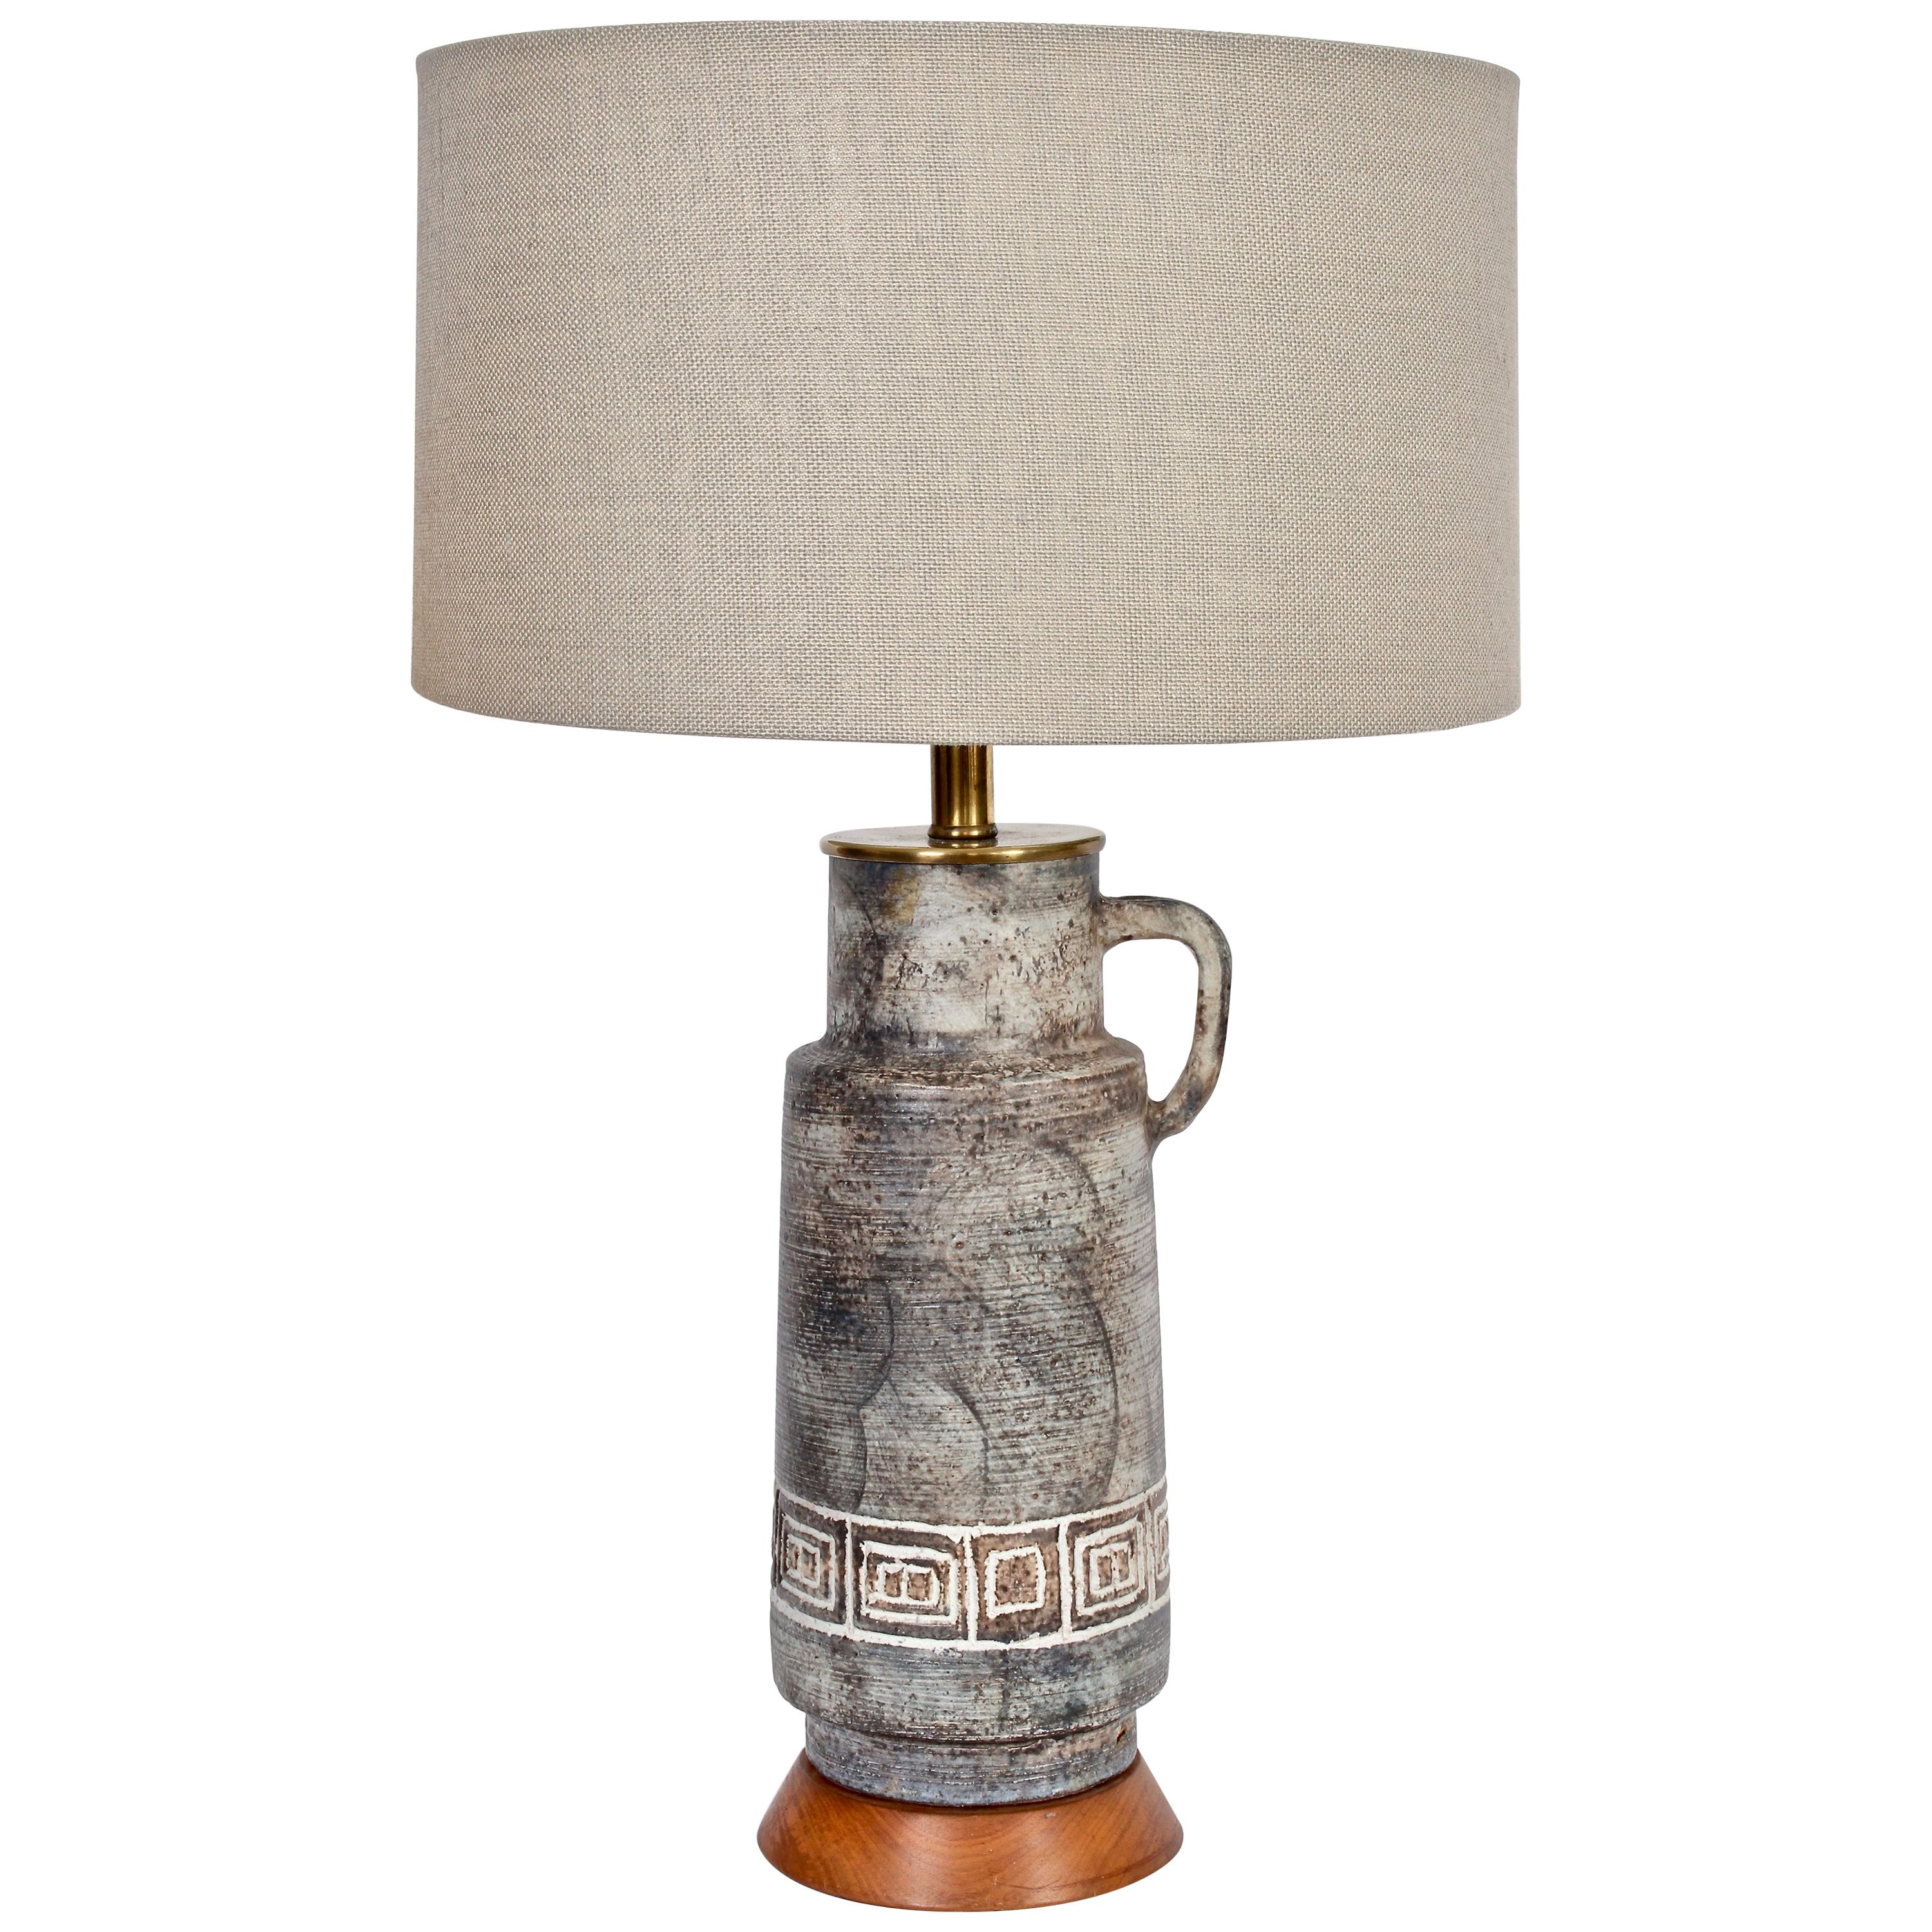 Tall Incised Ceramic Handled Pitcher Table Lamp, 1950s